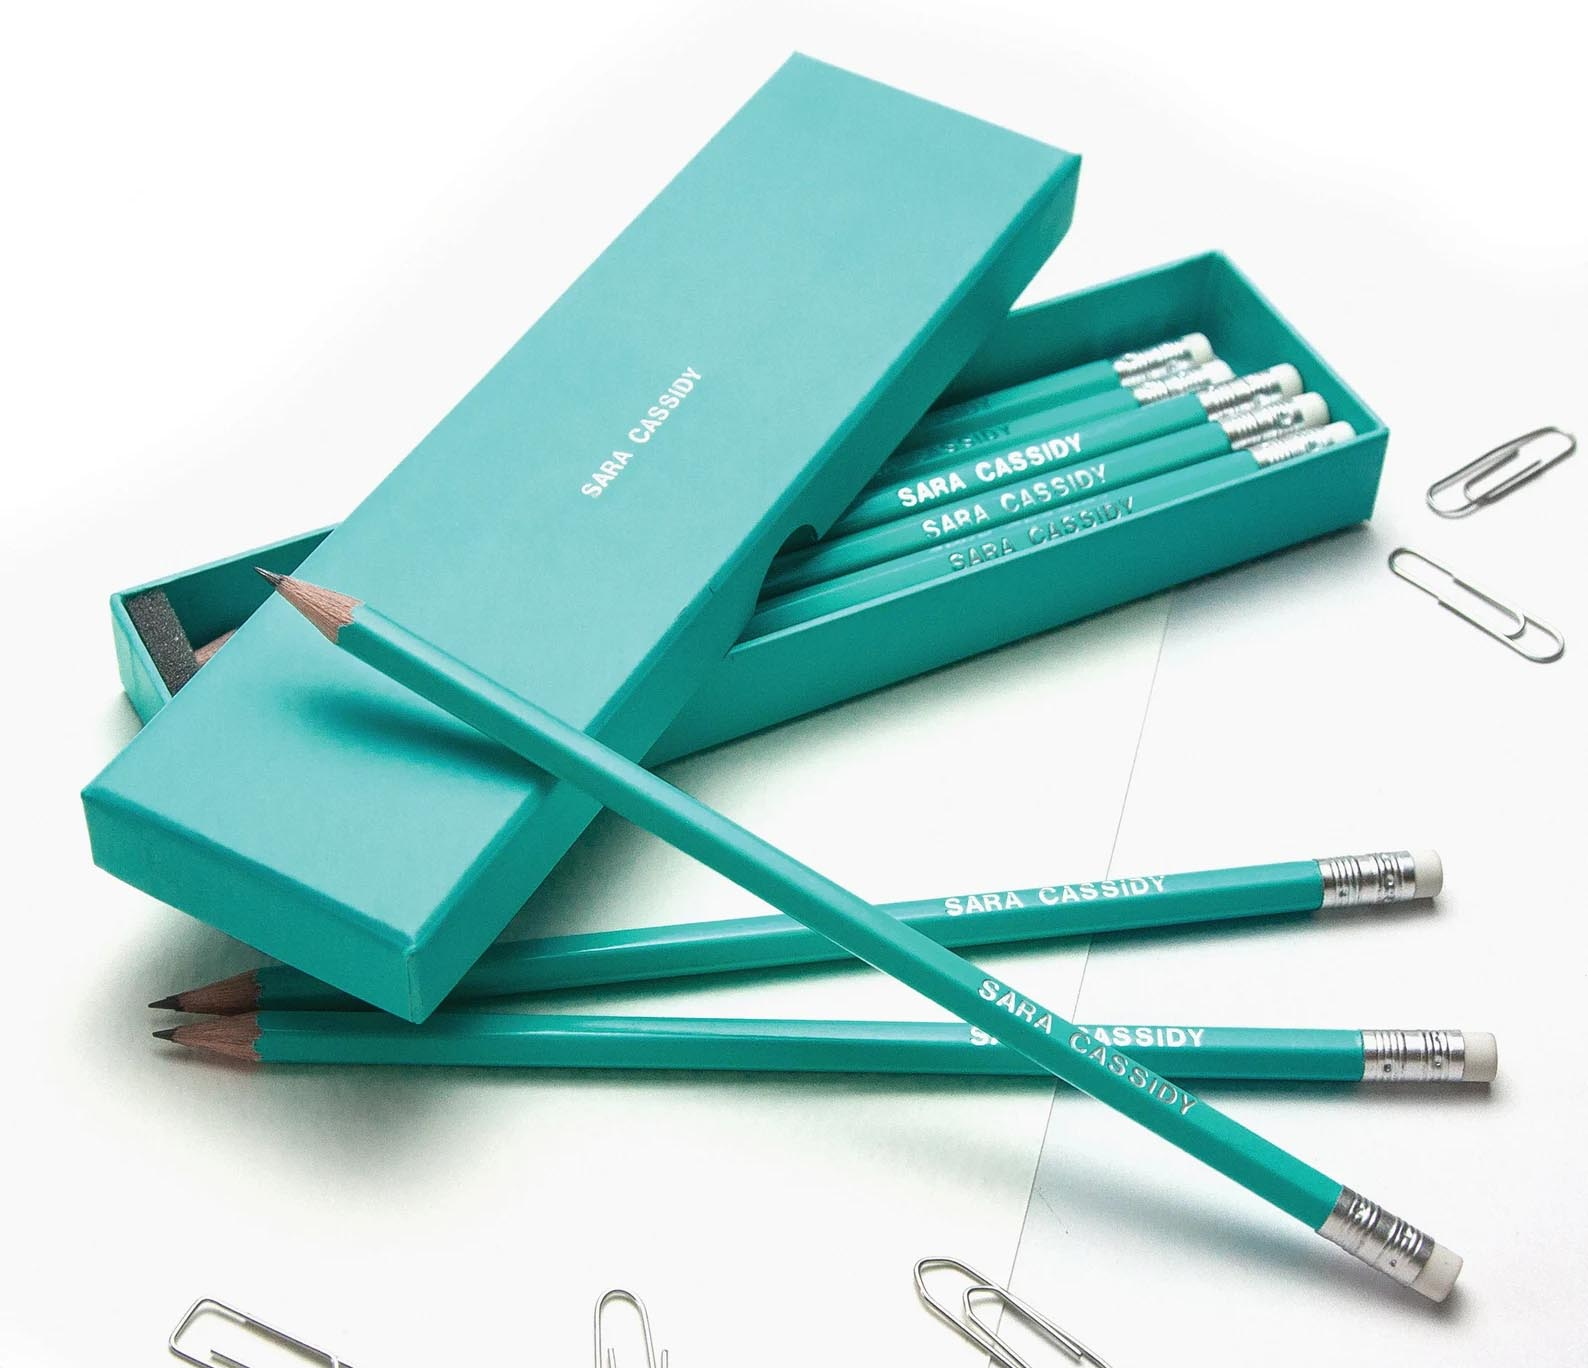 Modern Gift Ideas - Personalized pencils in a box.